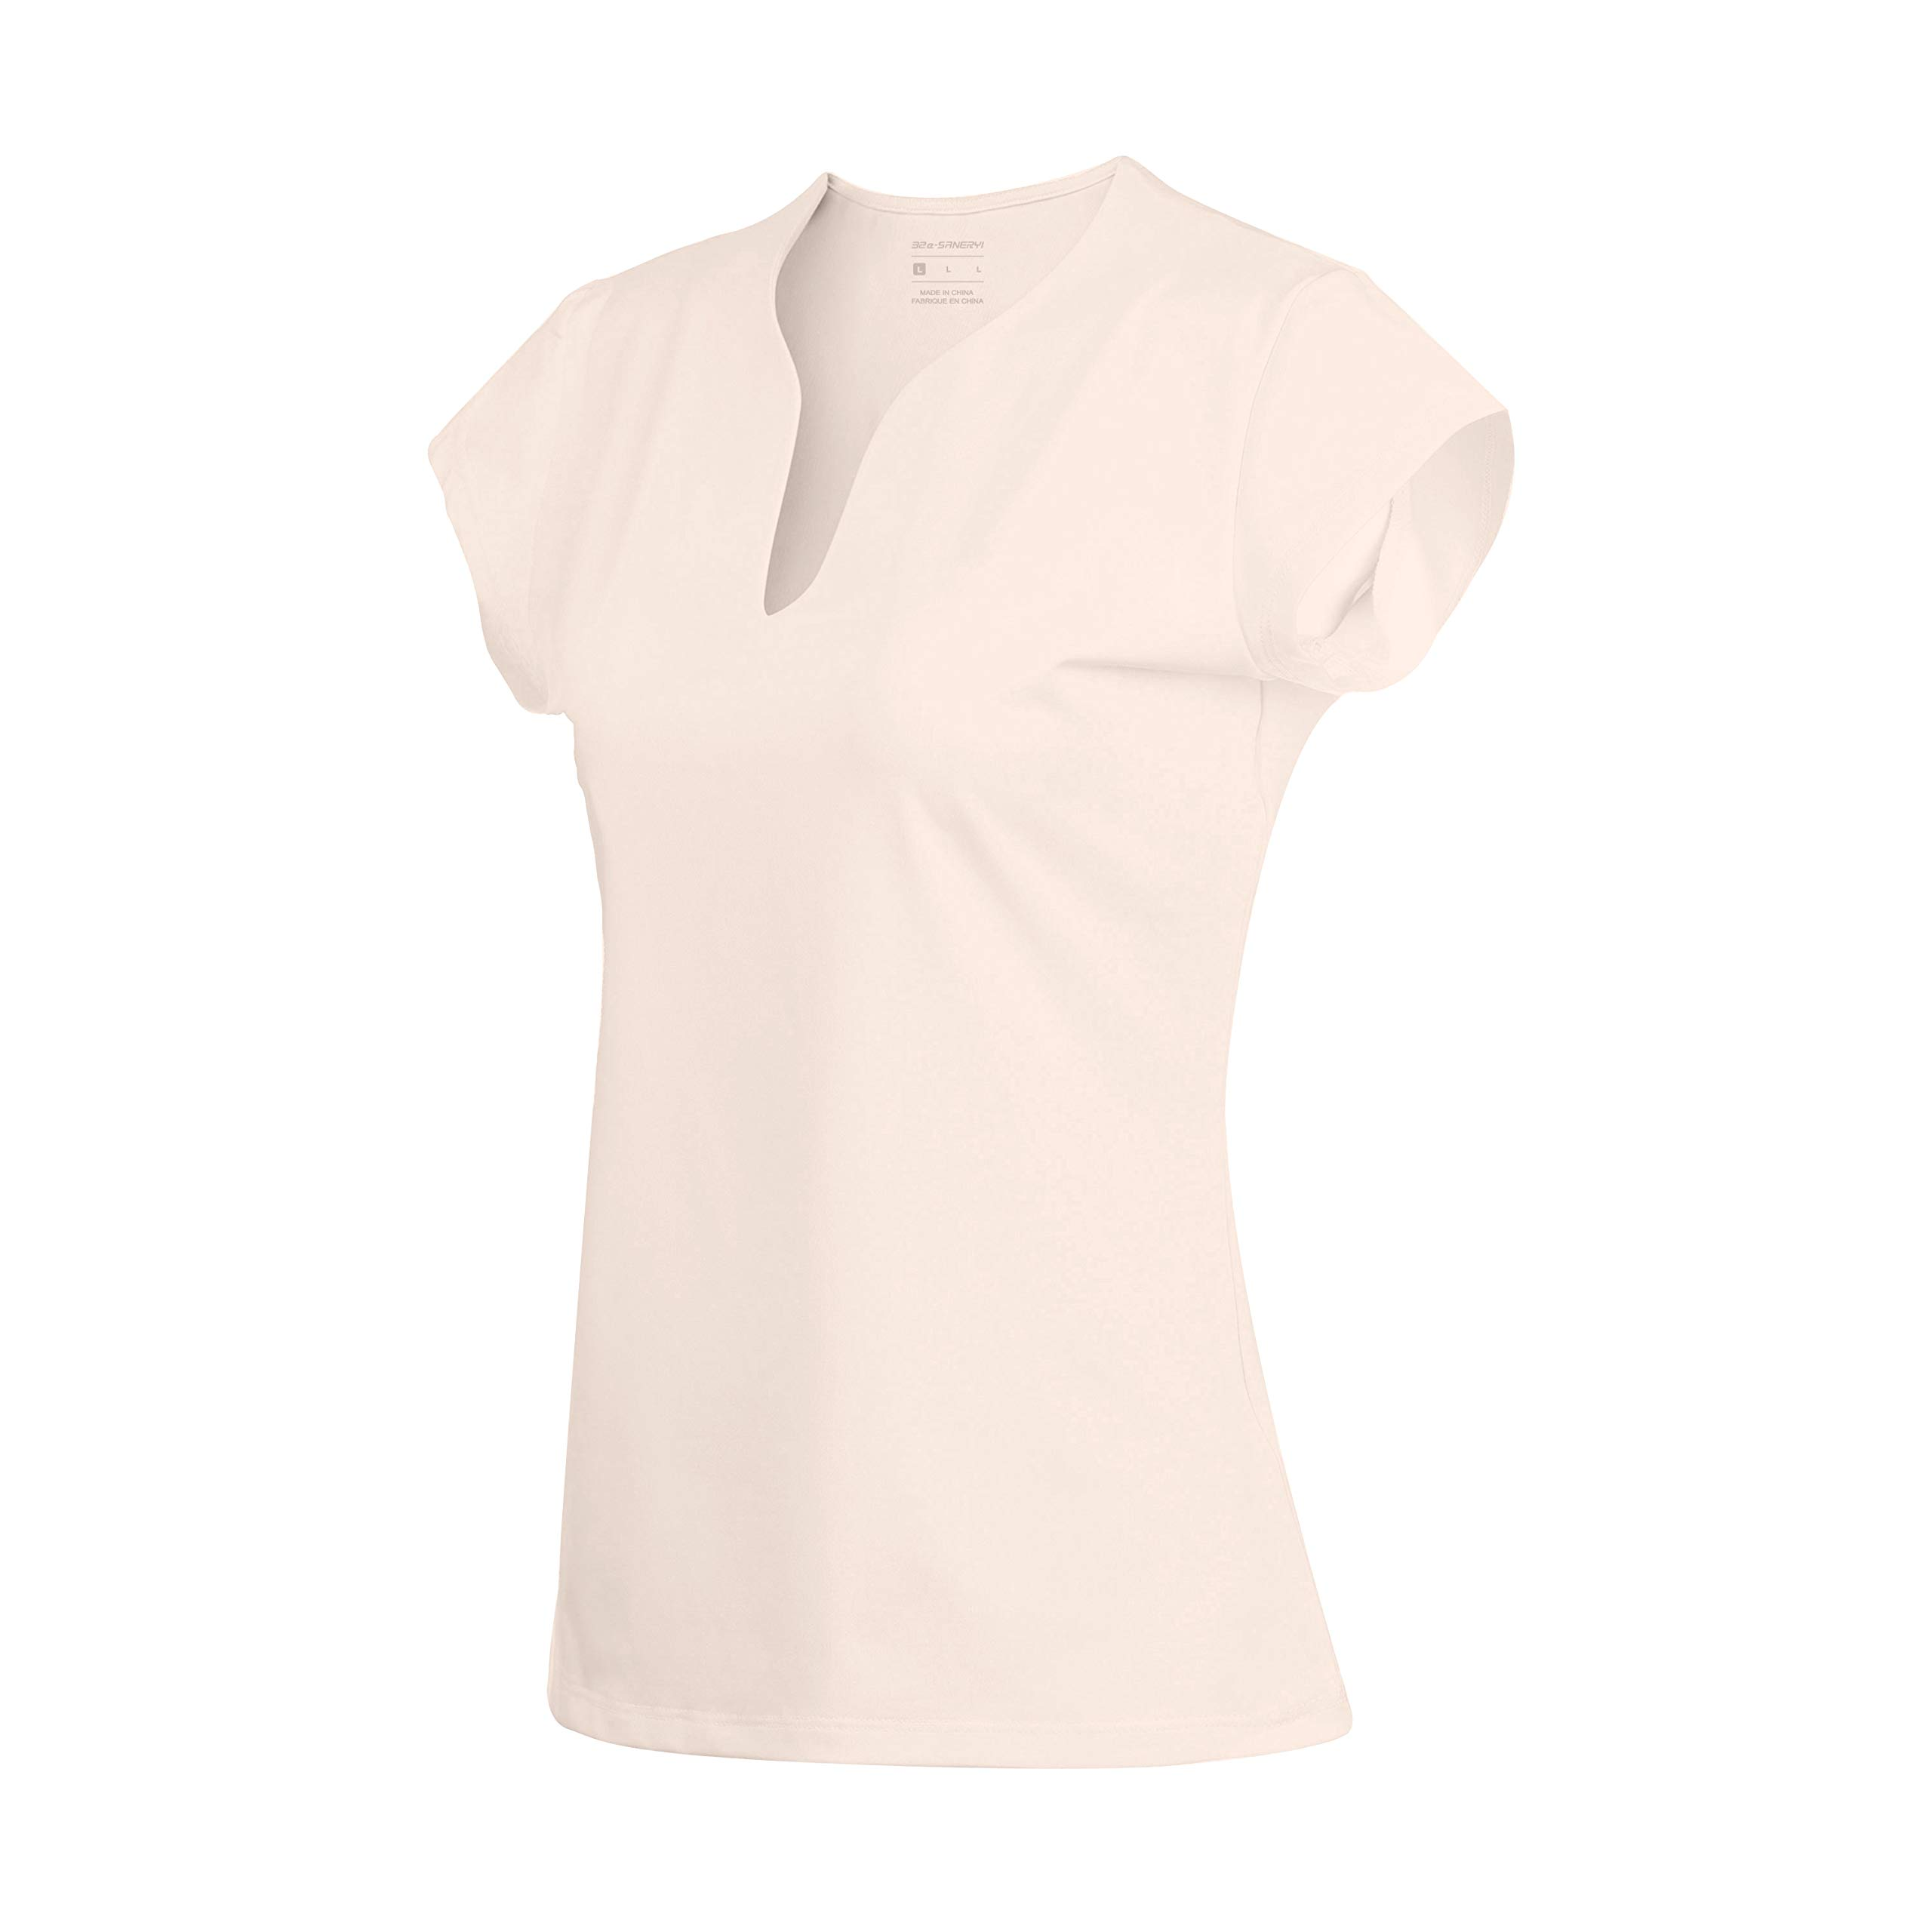 32e-SANERYI Women's V-Neck Pullover Short Sleeve Sports Shirts Quick-Drying Tees (Small, Beige Pink)